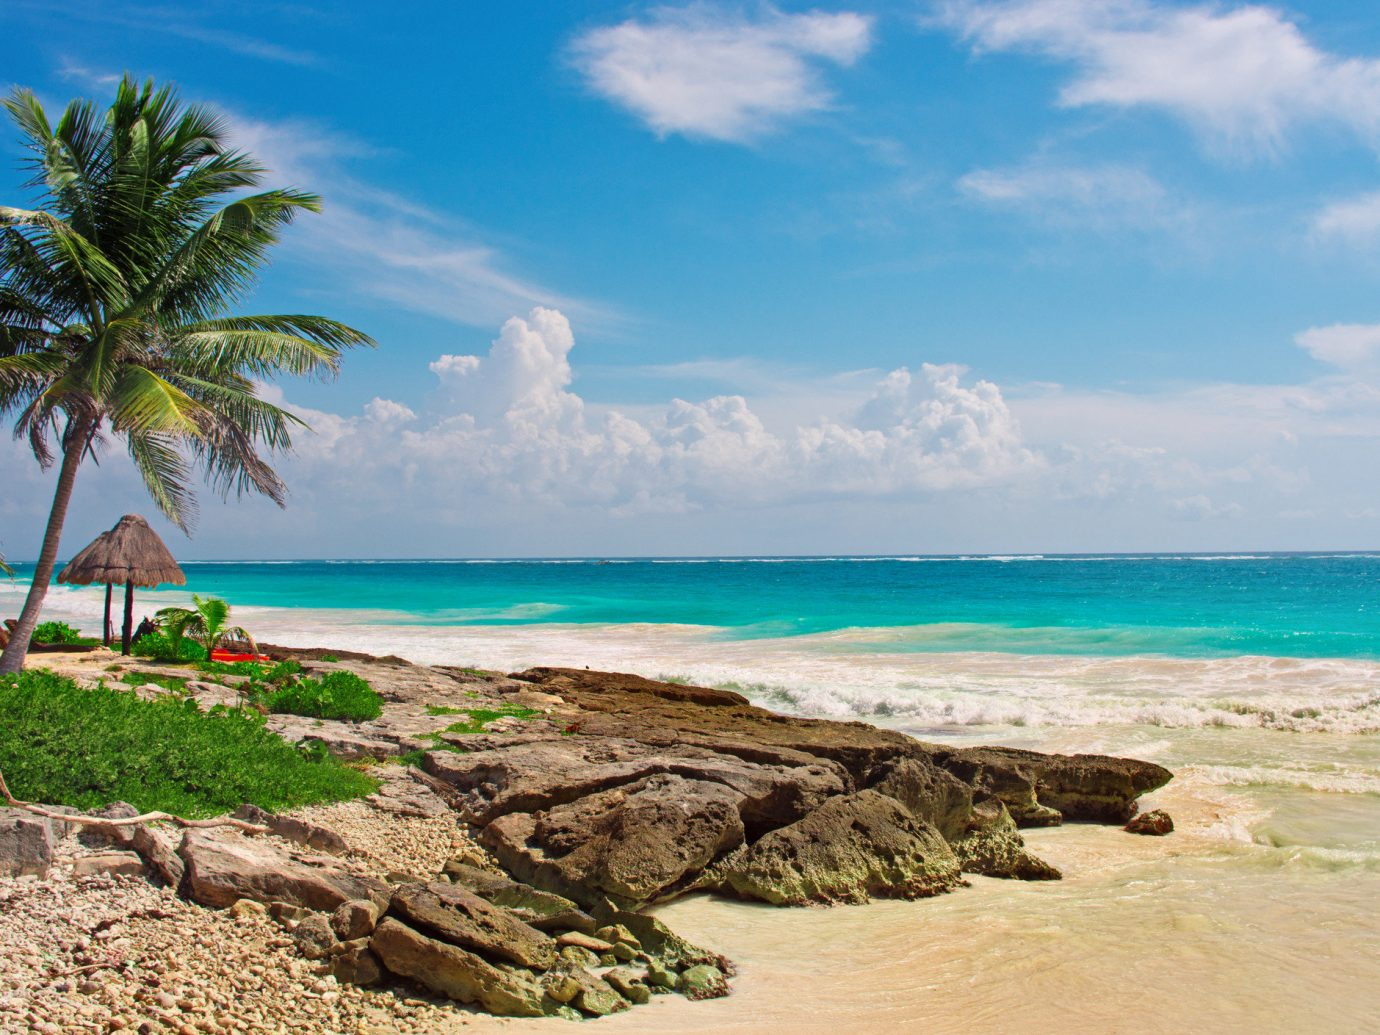 Travel Tips outdoor sky water Nature Sea Beach body of water tropics shore Coast Ocean caribbean coastal and oceanic landforms arecales palm tree cloud palm rock tree tourism vacation bay promontory Island islet horizon sand landscape sandy day